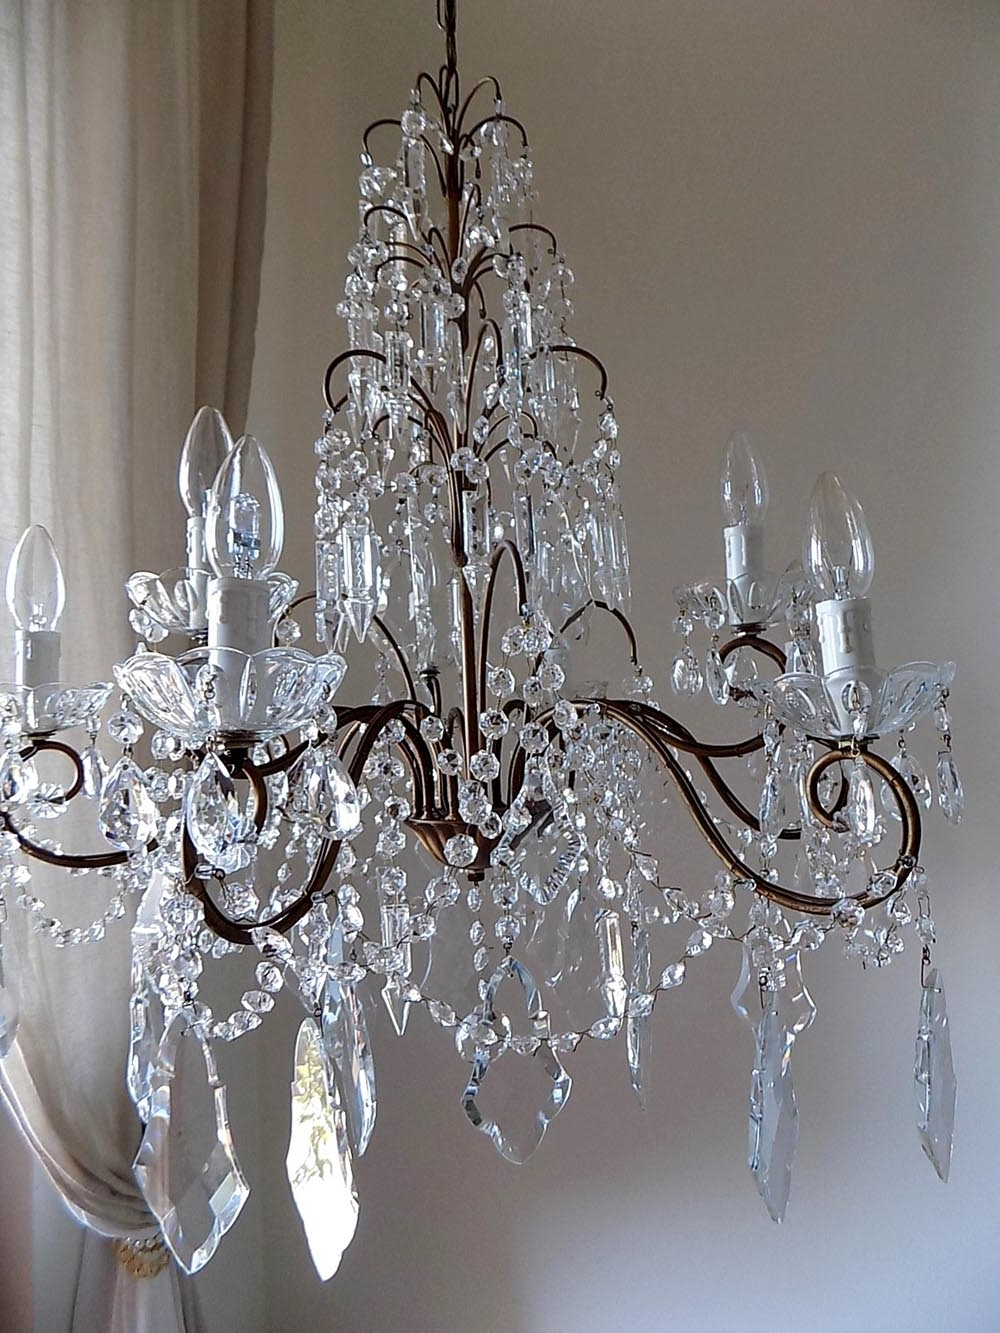 Widely Used Brass And Crystal Chandelier For Italian Vintage 9 Arms Chandelier With Rare Shaped Crystals (View 9 of 15)